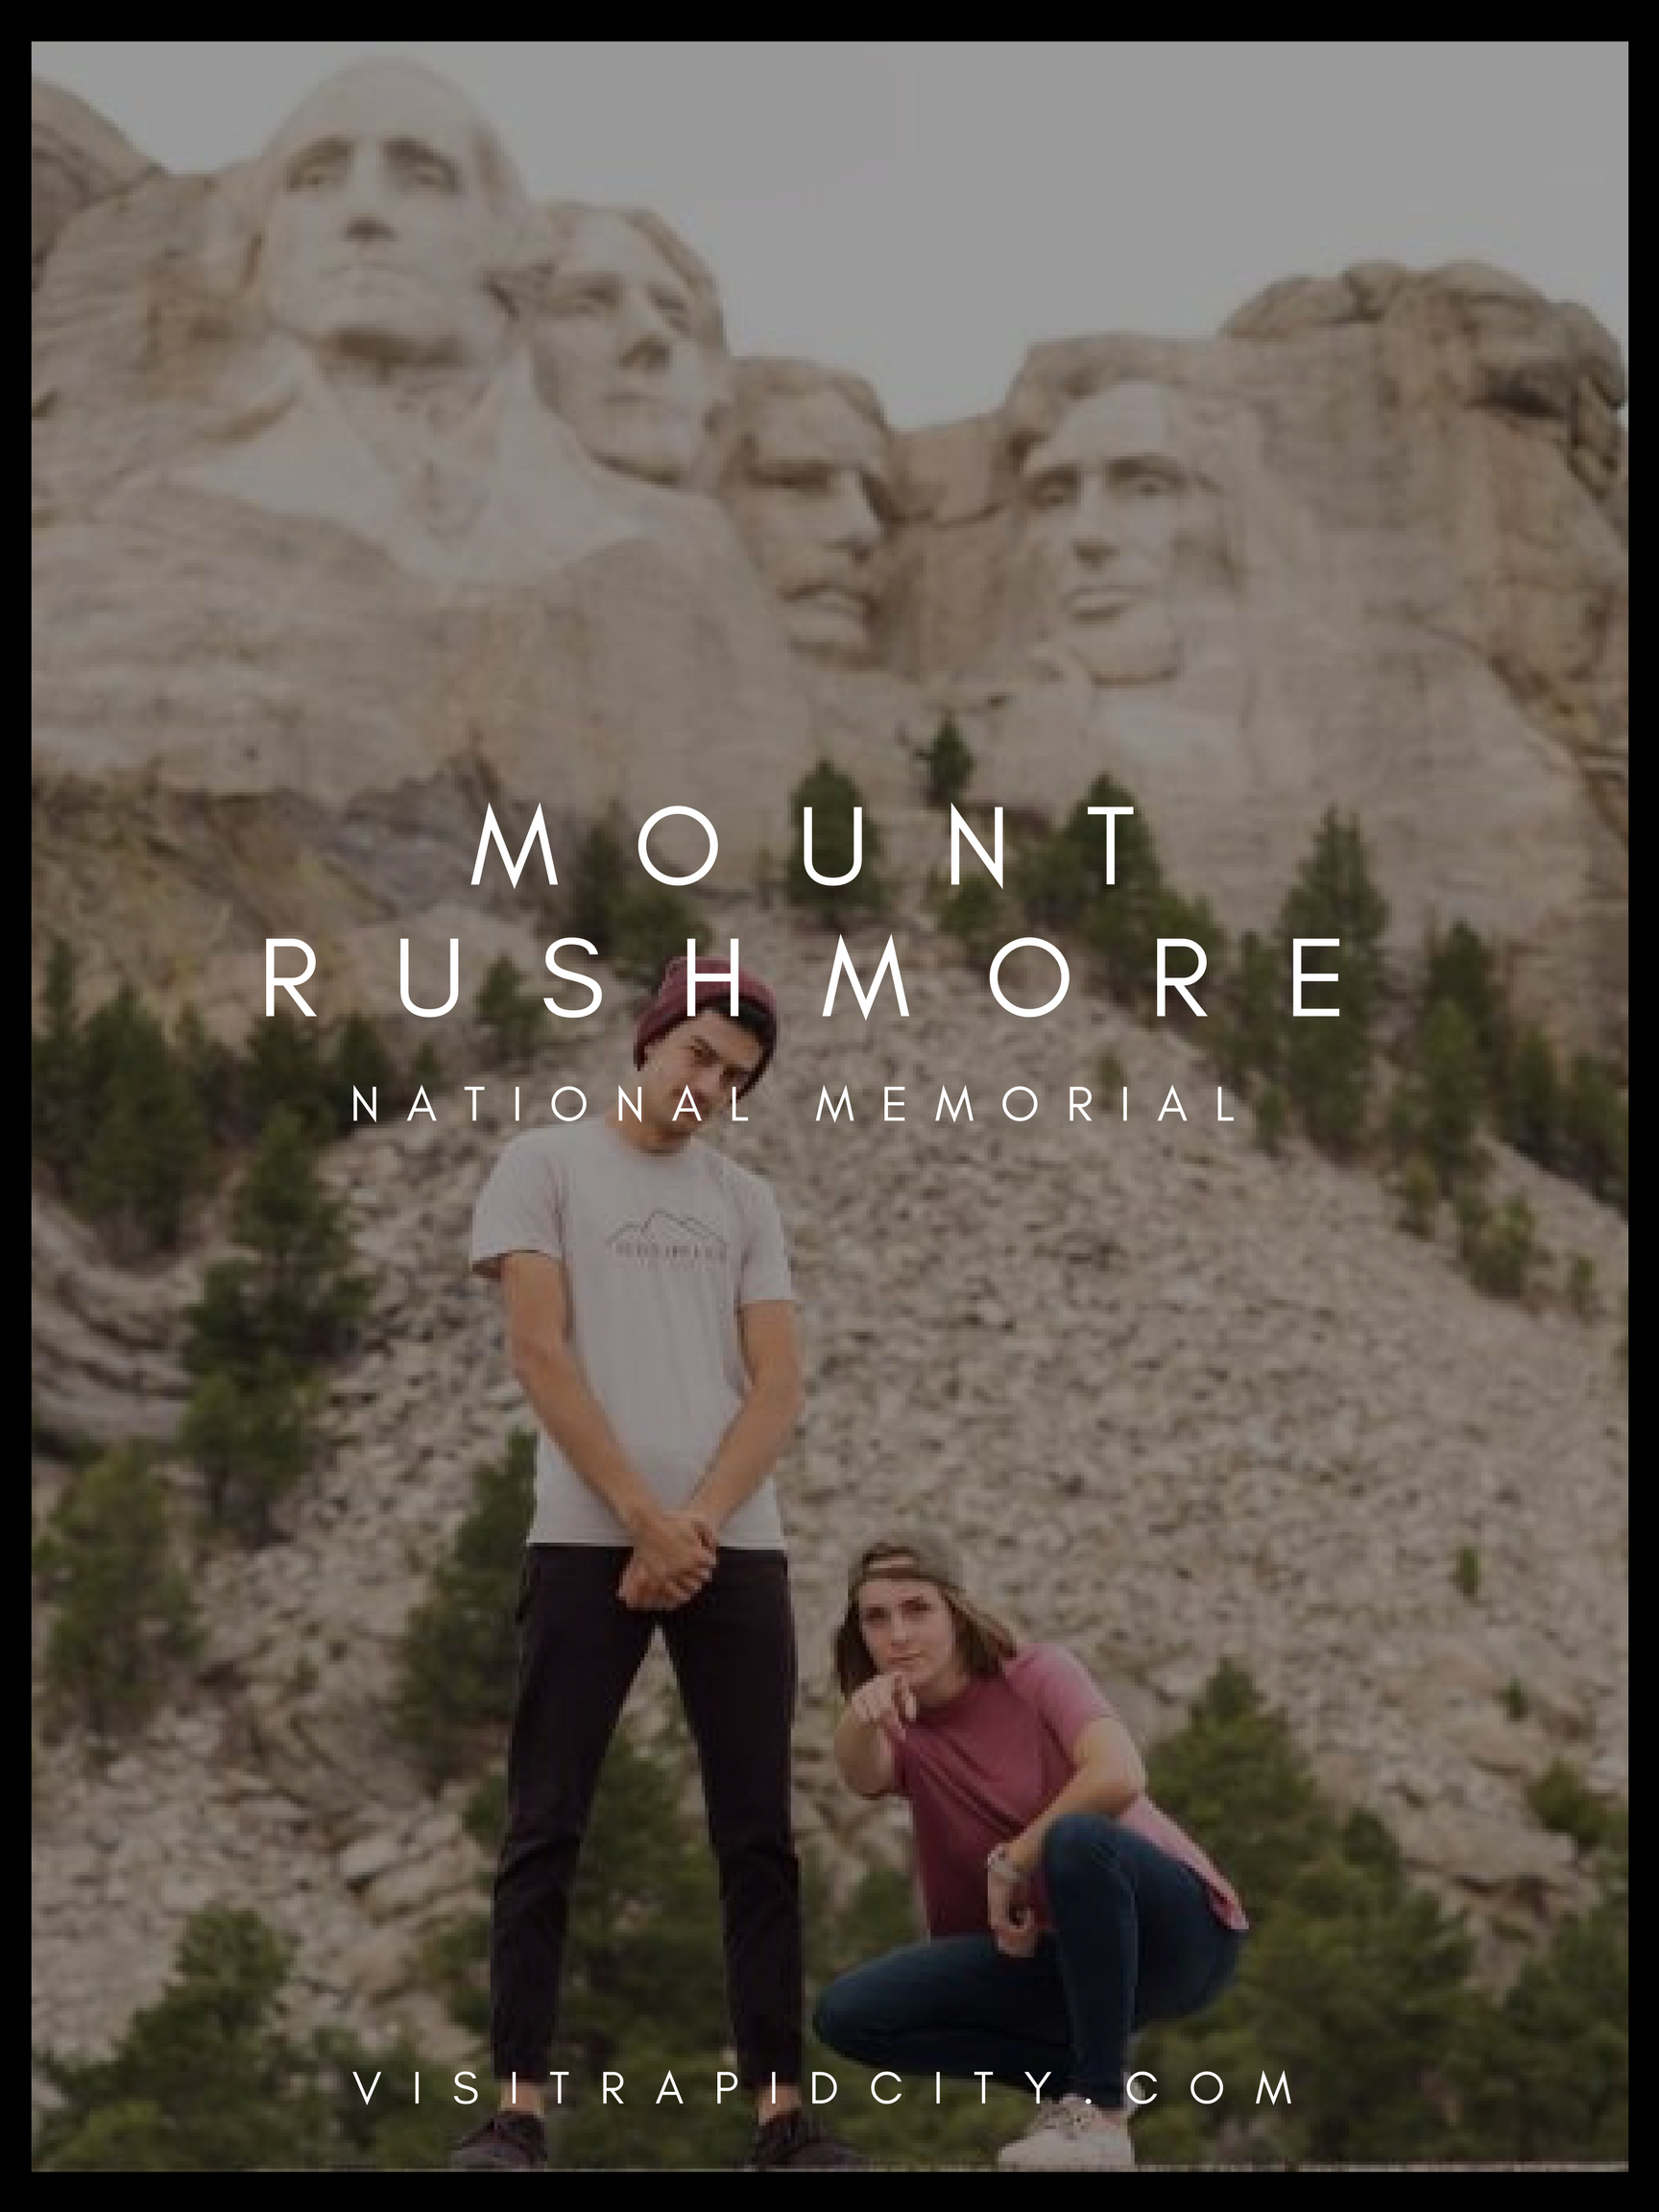 See The Four Famous Faces Of Mount Rushmore When You Visit